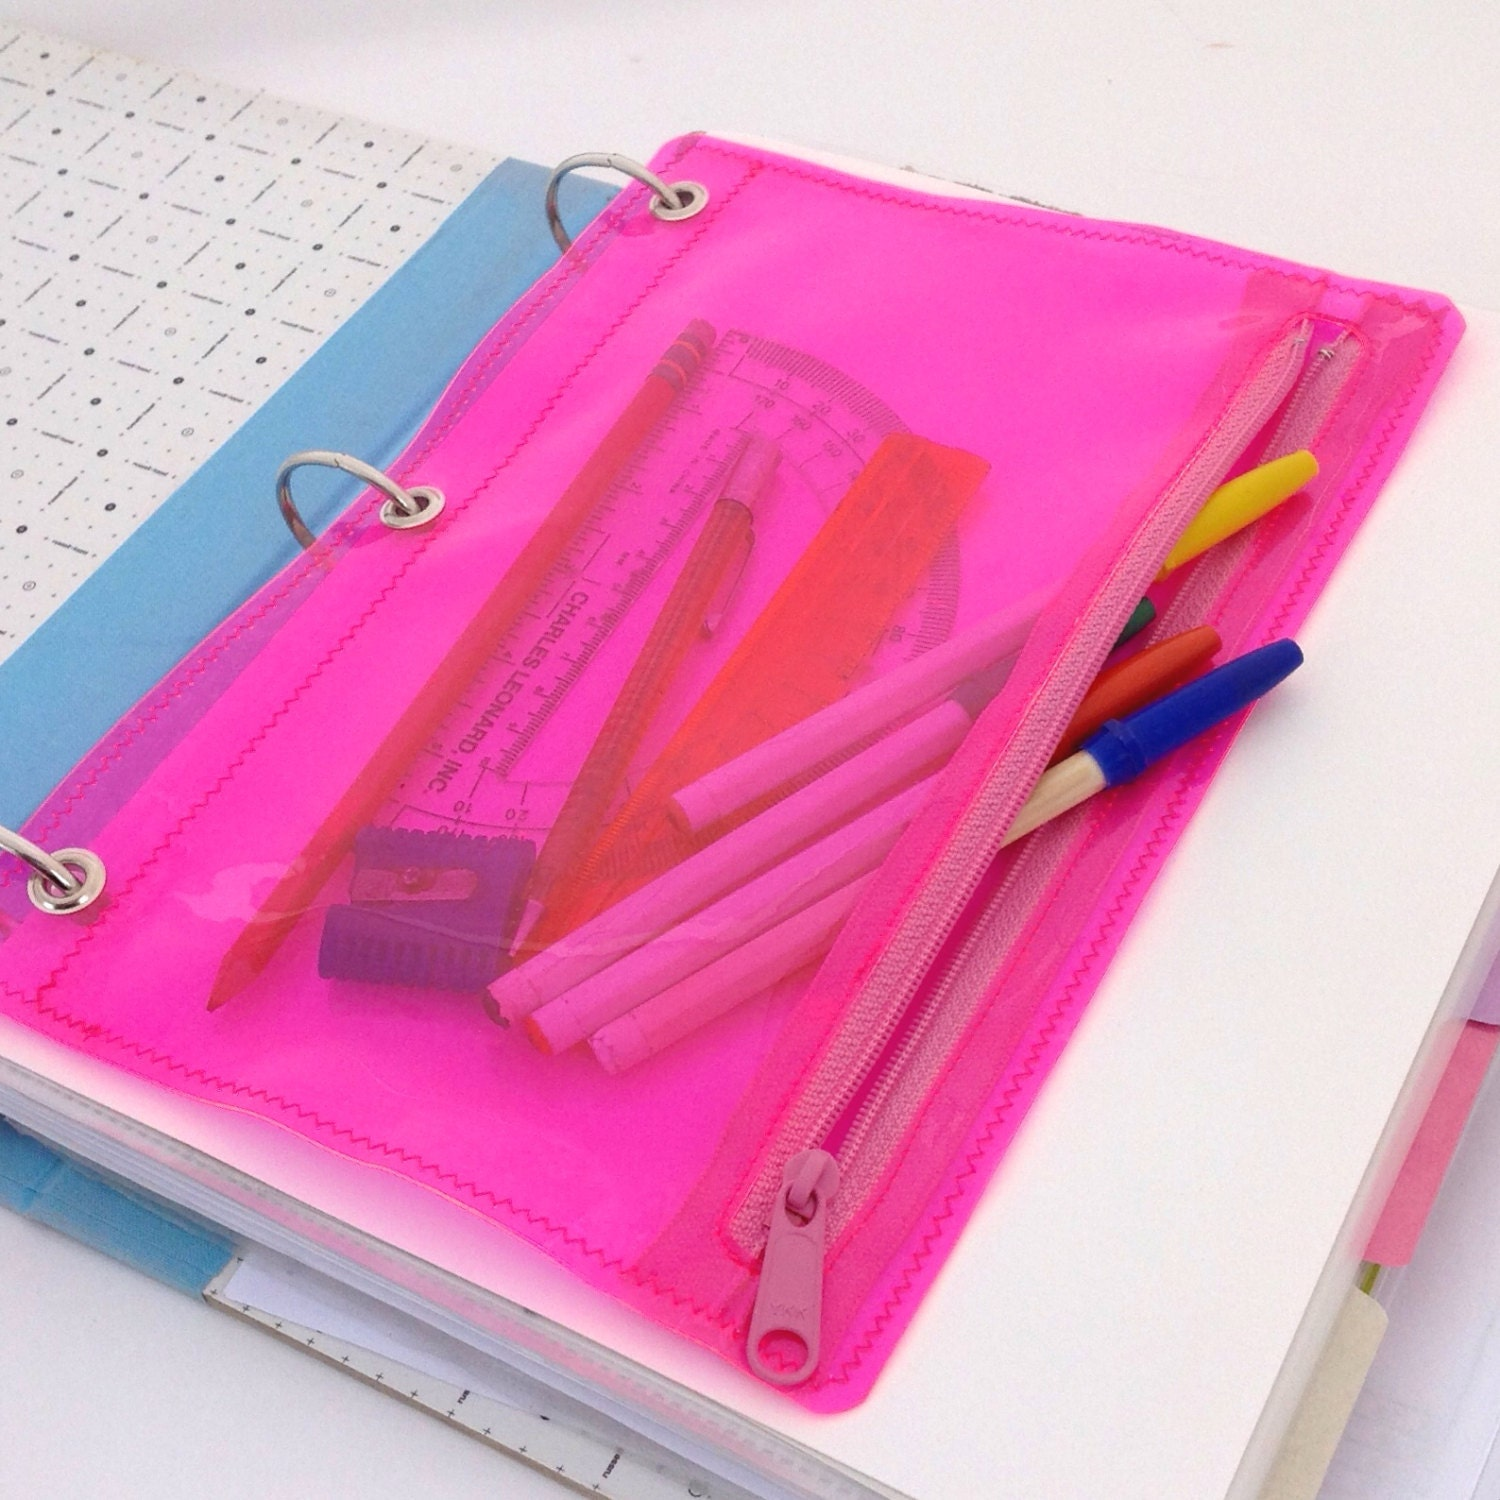 Vinyl Pencil Pouch For Three Ring Binder Neon Pink